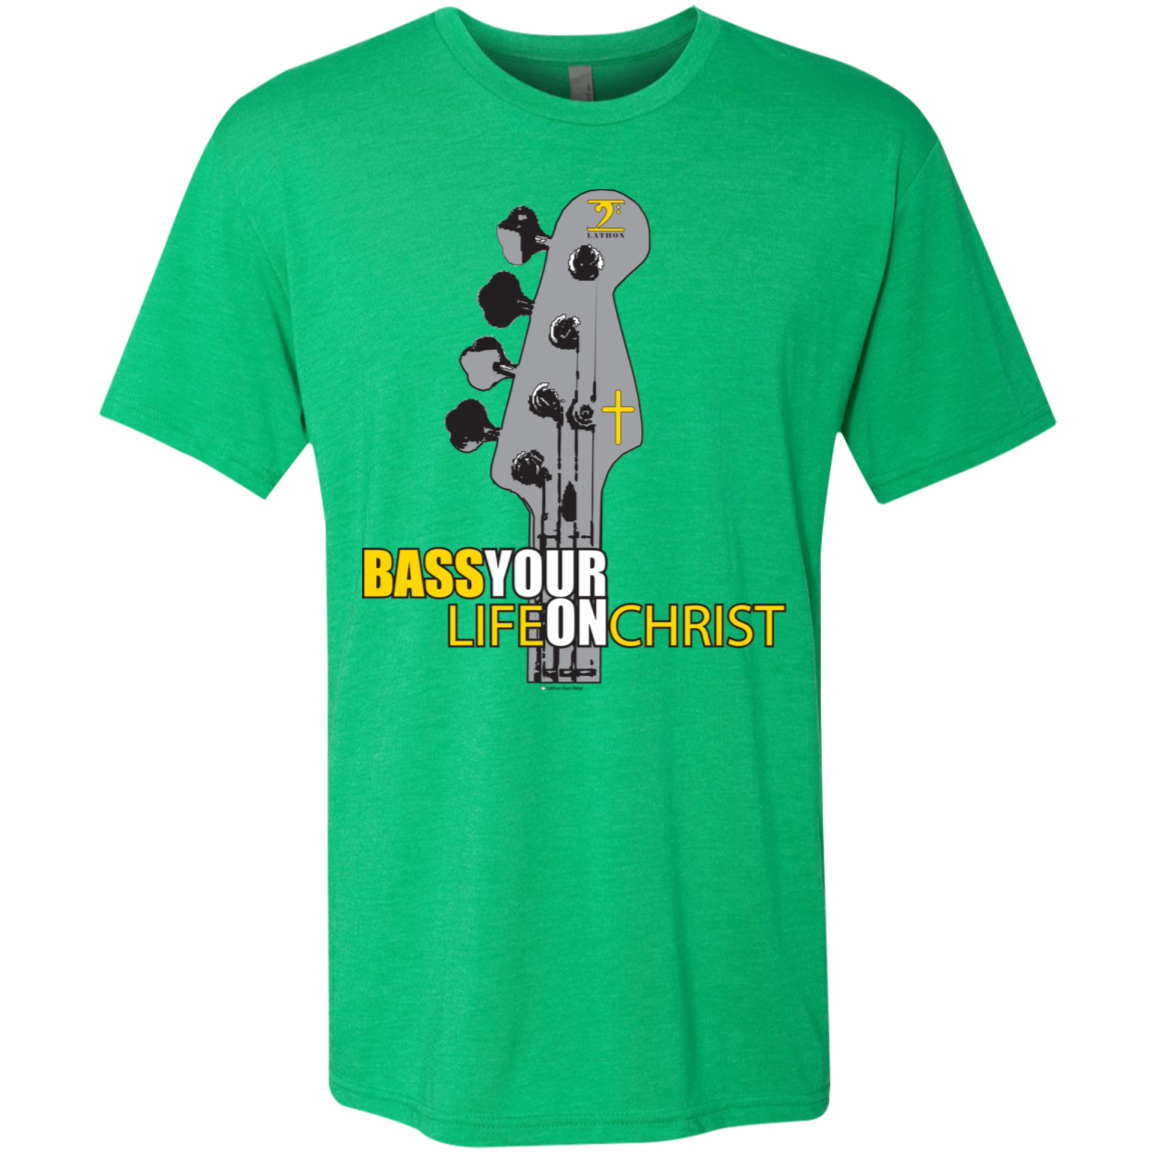 NL6010 Next Level Men's Triblend T-Shirt - Lathon Bass Wear